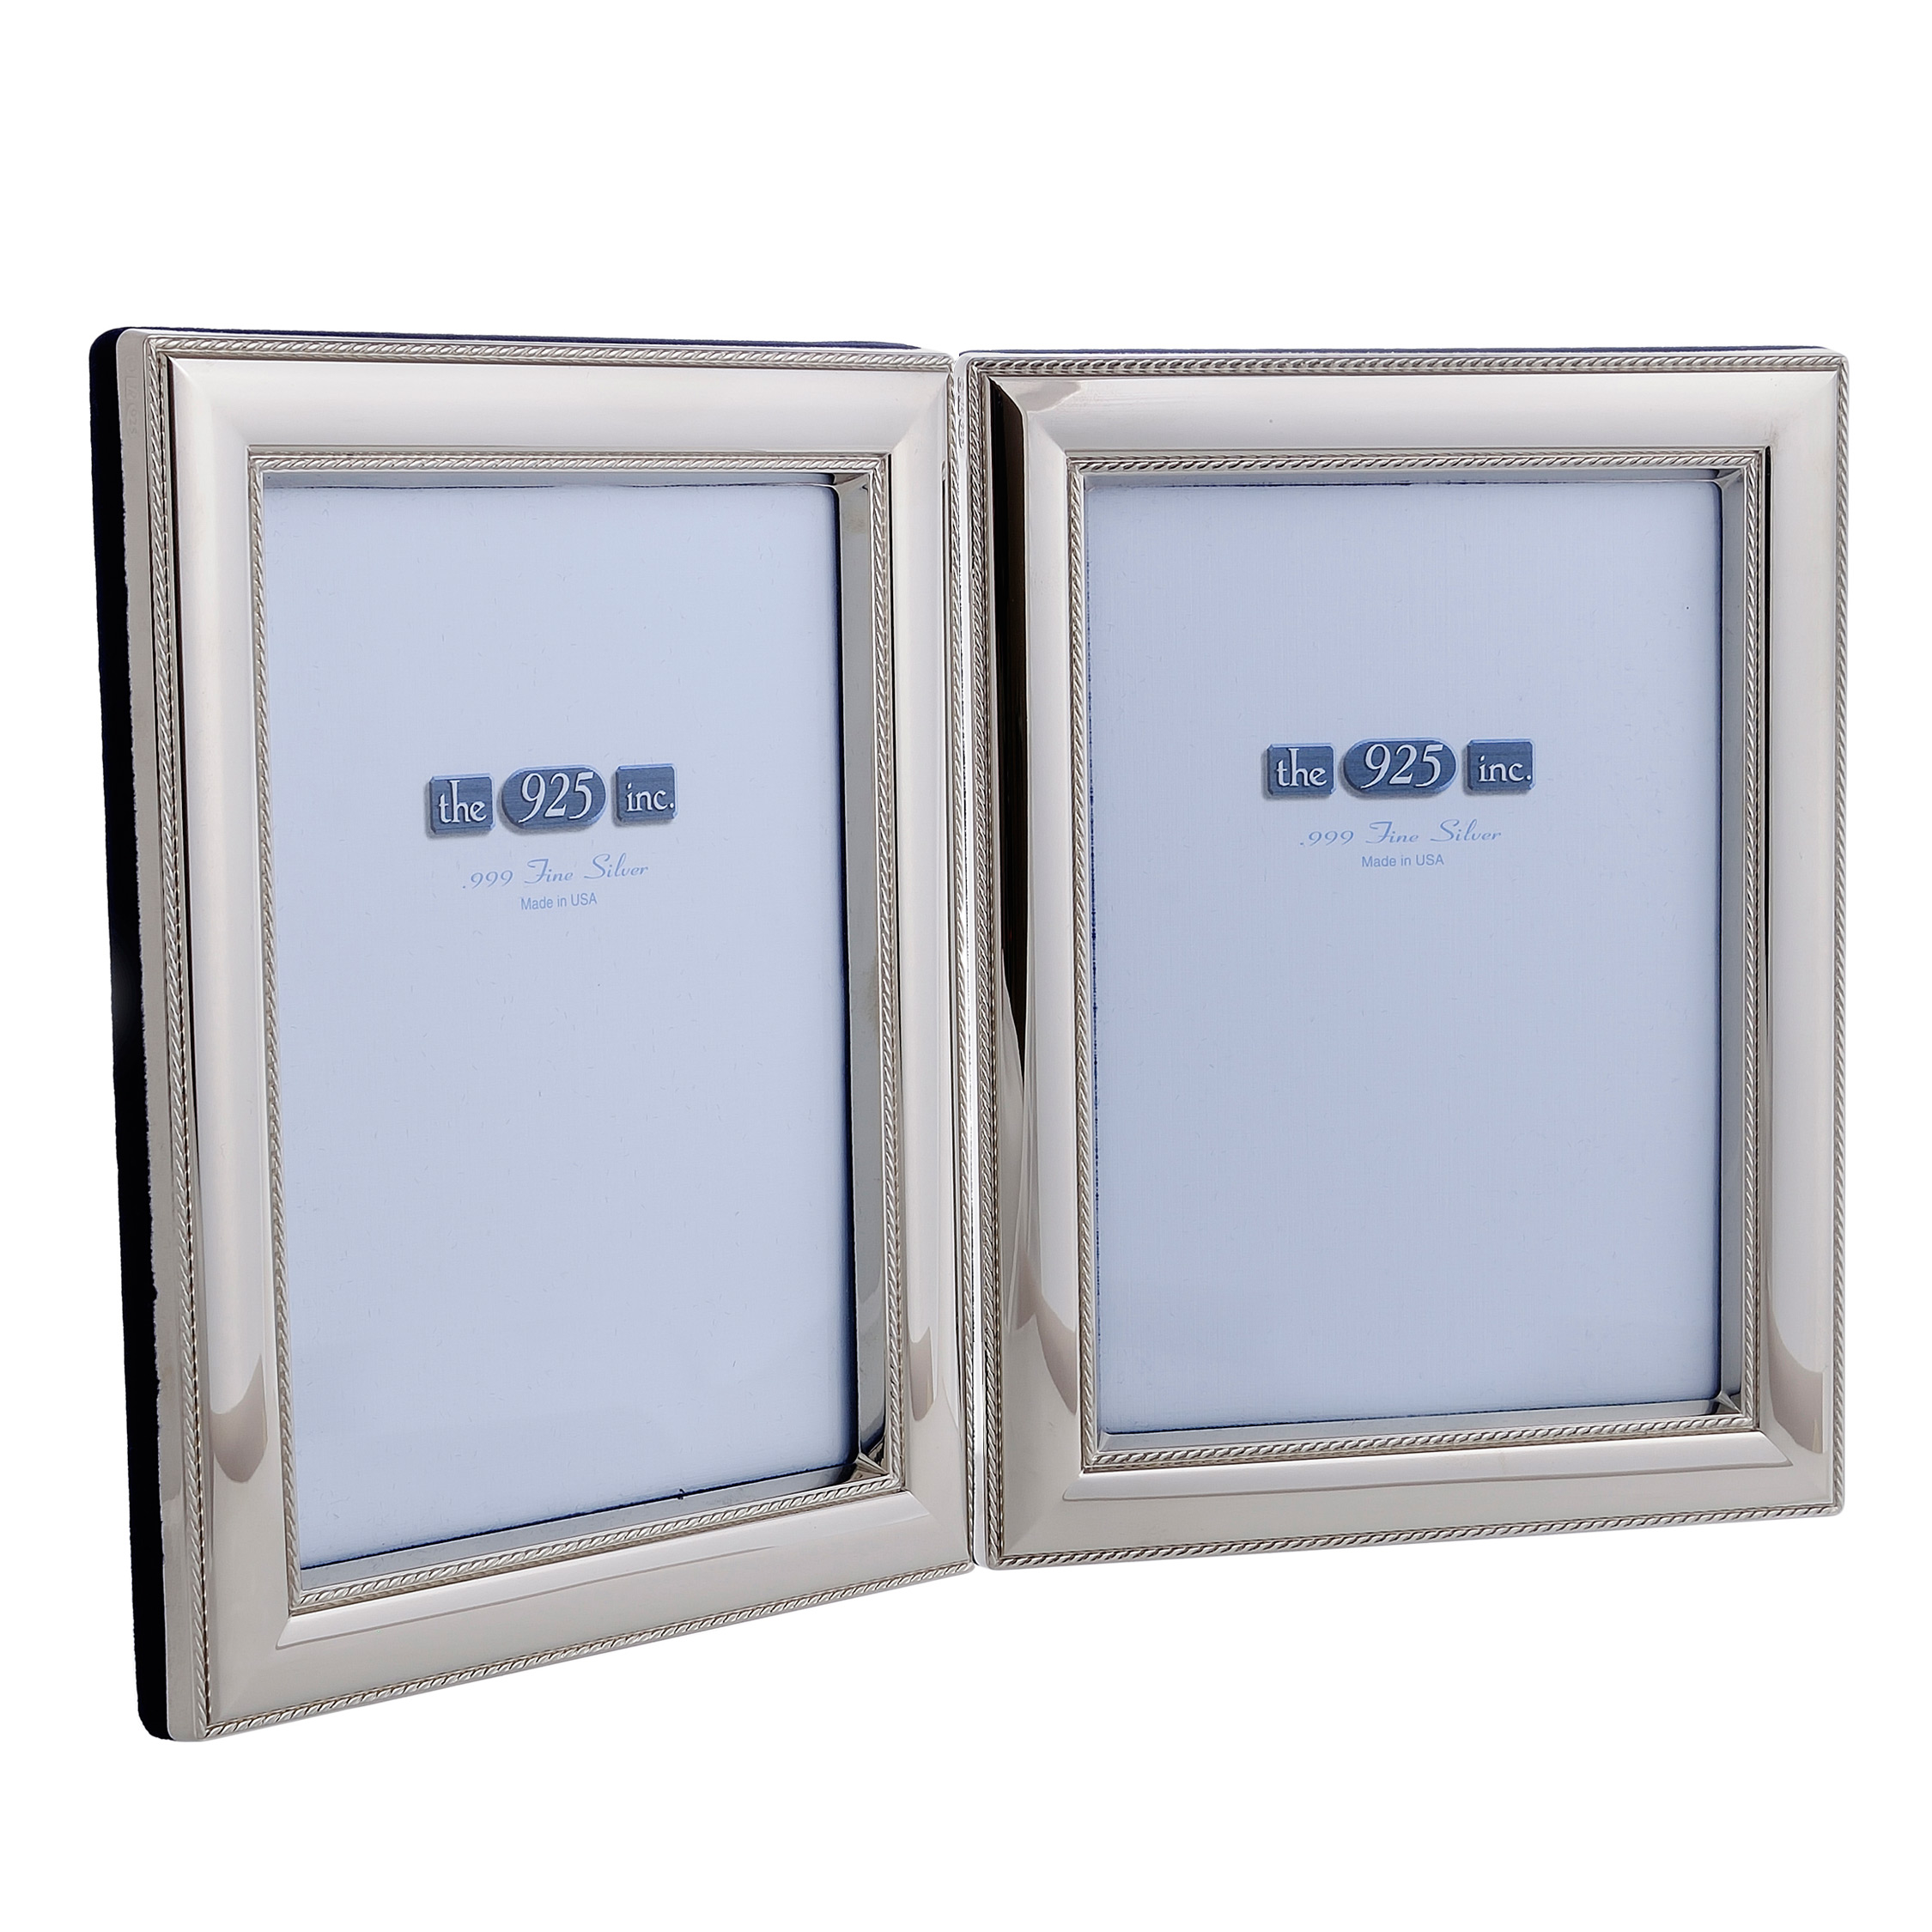 #111-8D Beaded Double Frame Image